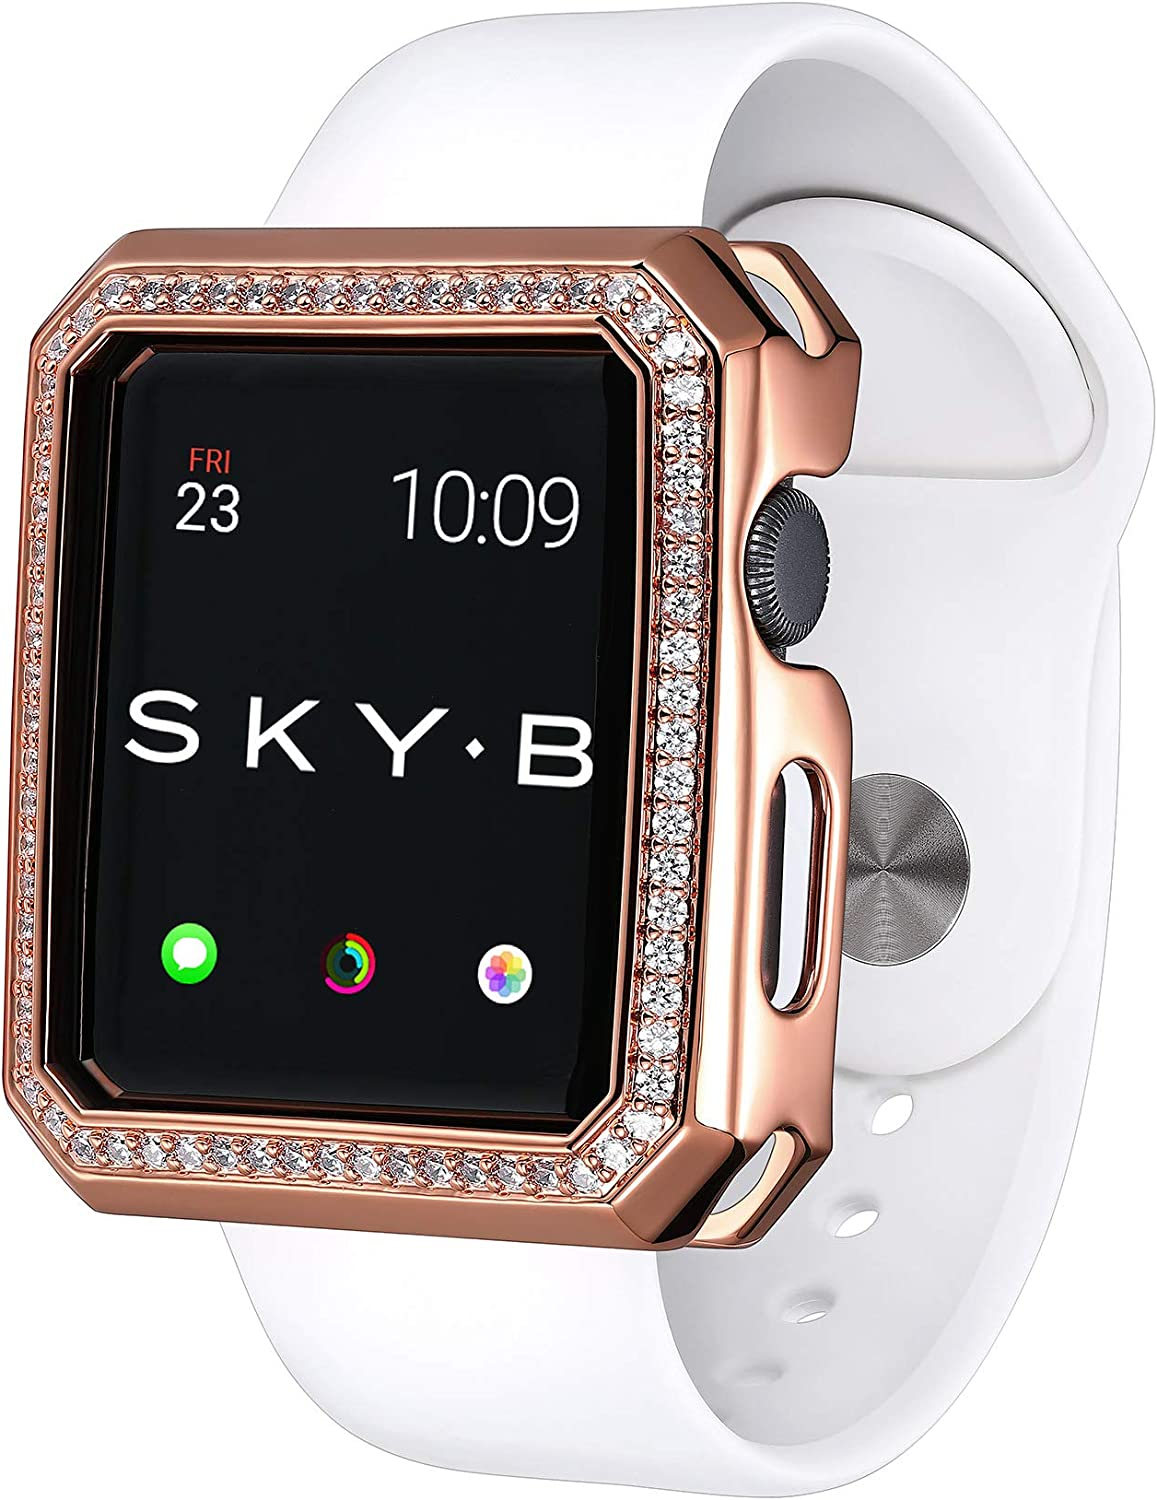 SKYB Deco Halo Rose Gold Protective Jewelry Case for Apple Watch Series 1, 2, 3, 4, 5 Devices - 42mm